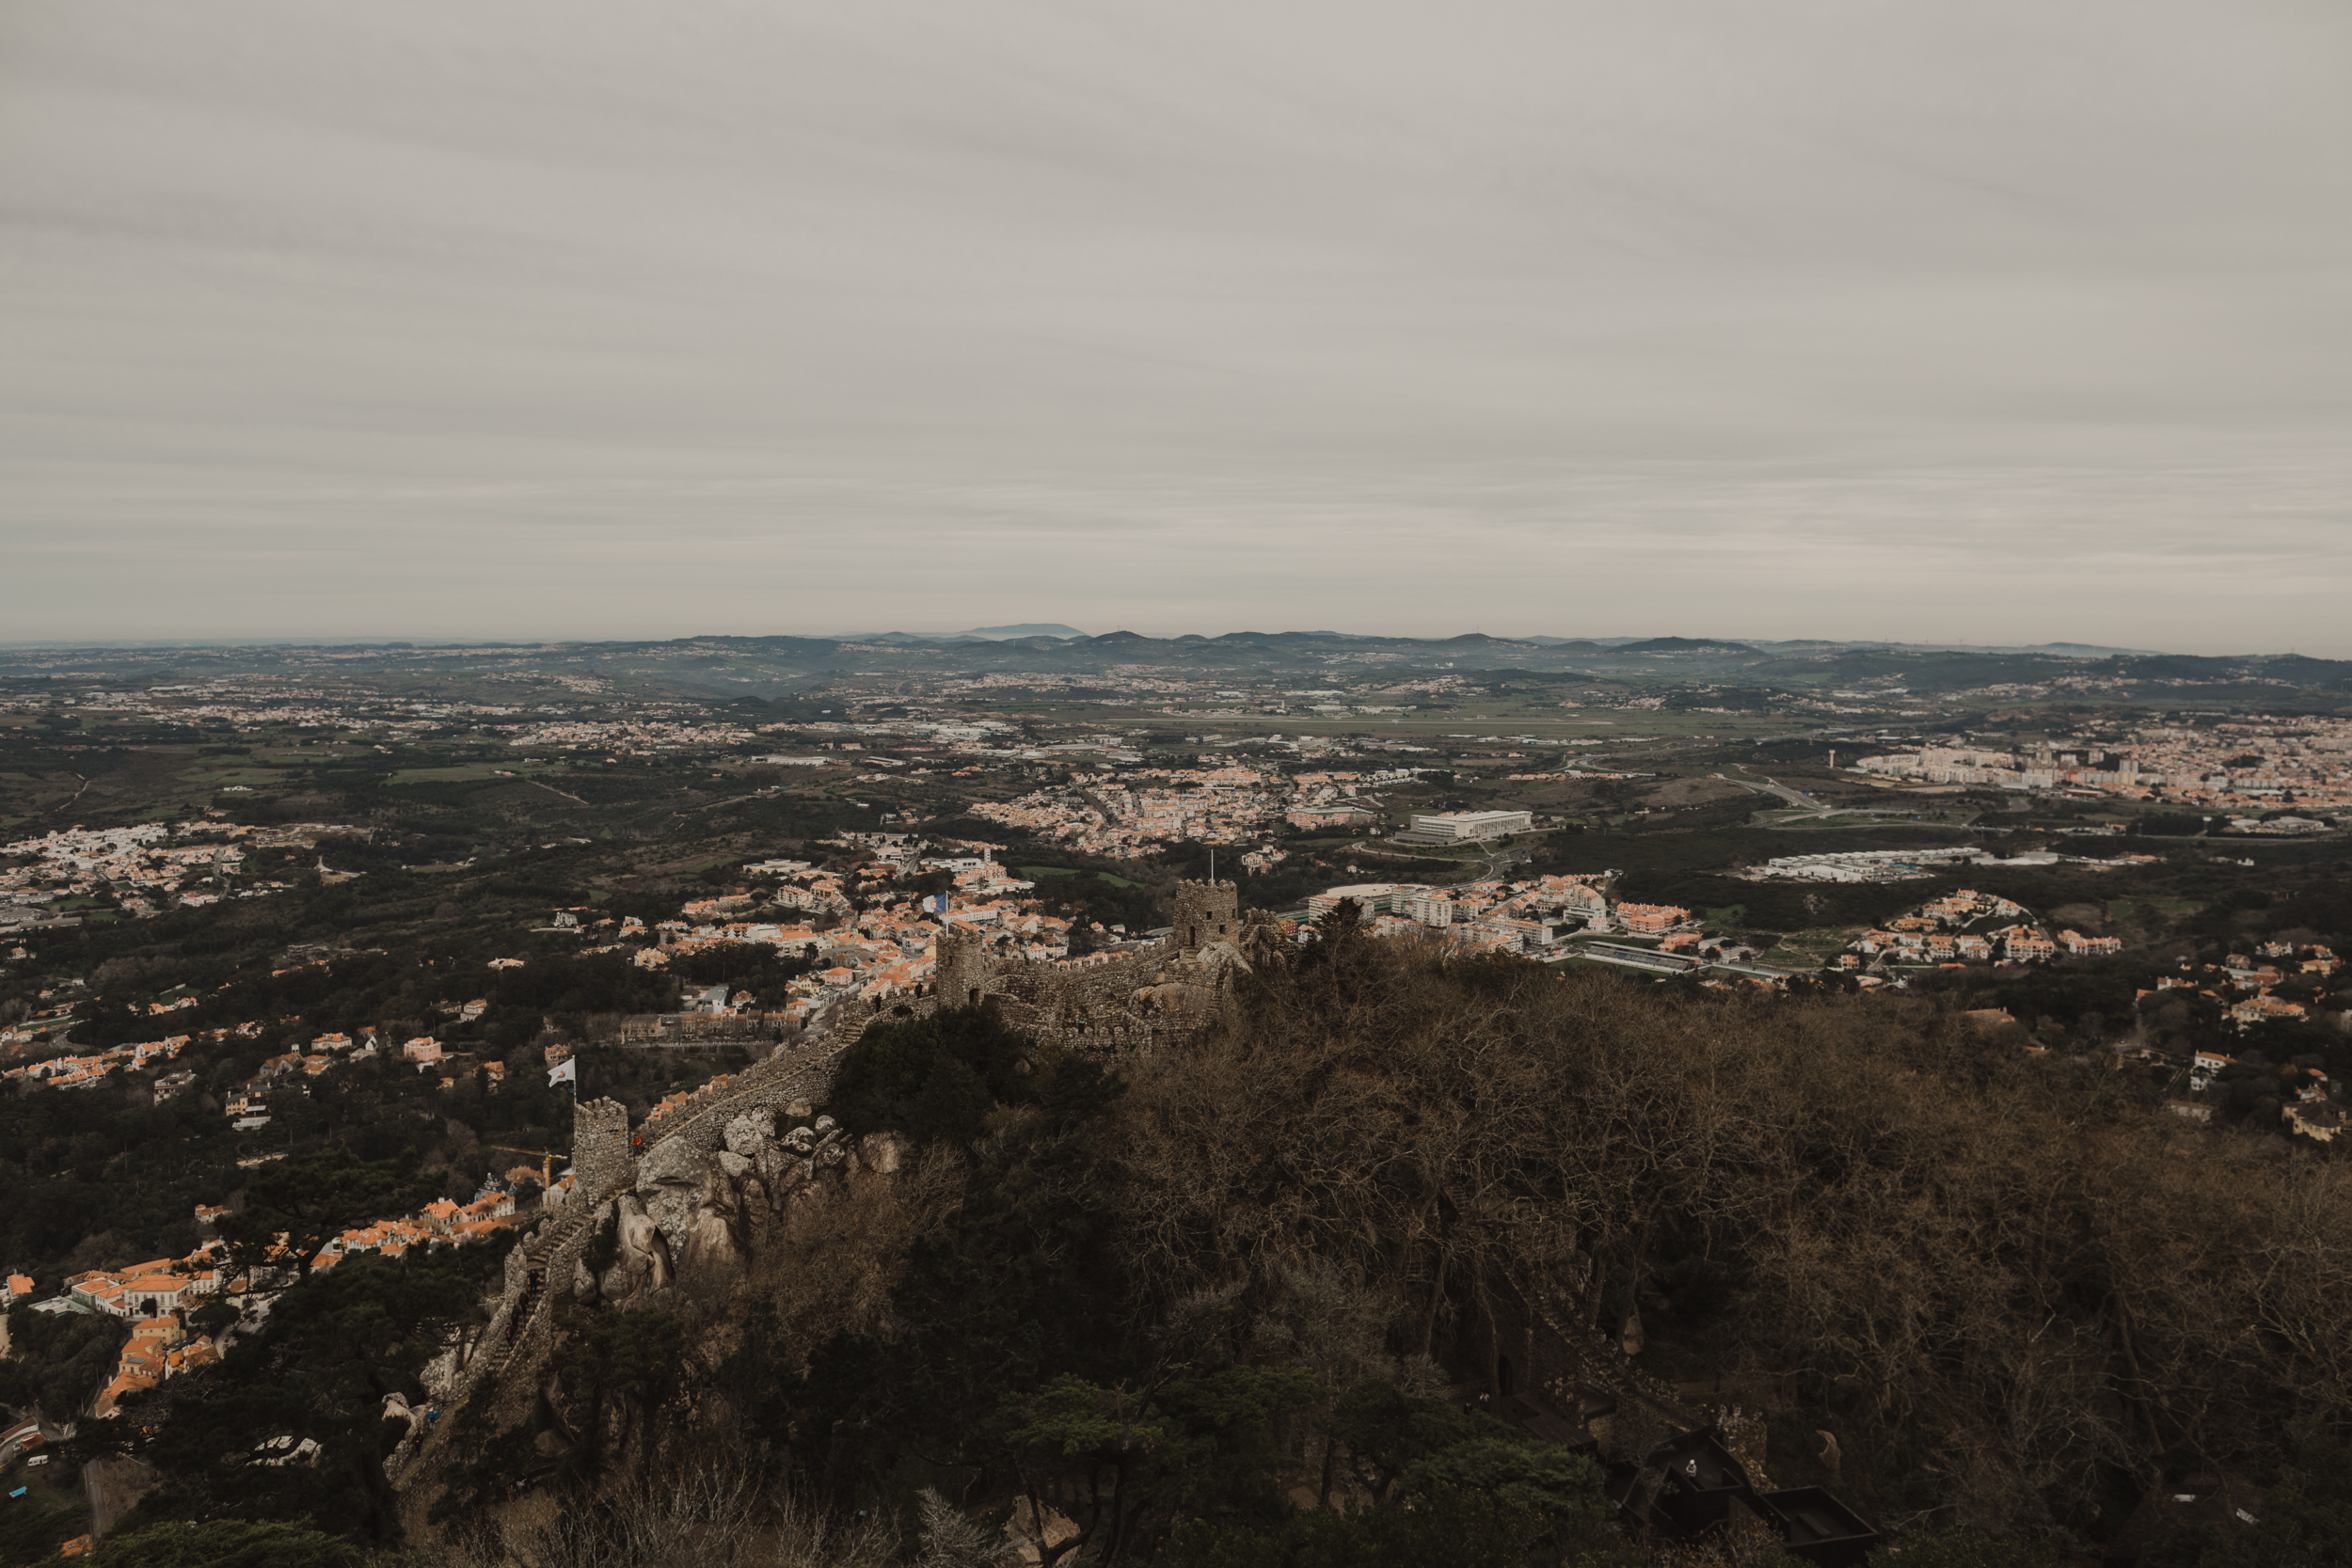 The view of the Moorish Castle from Palace de Pena